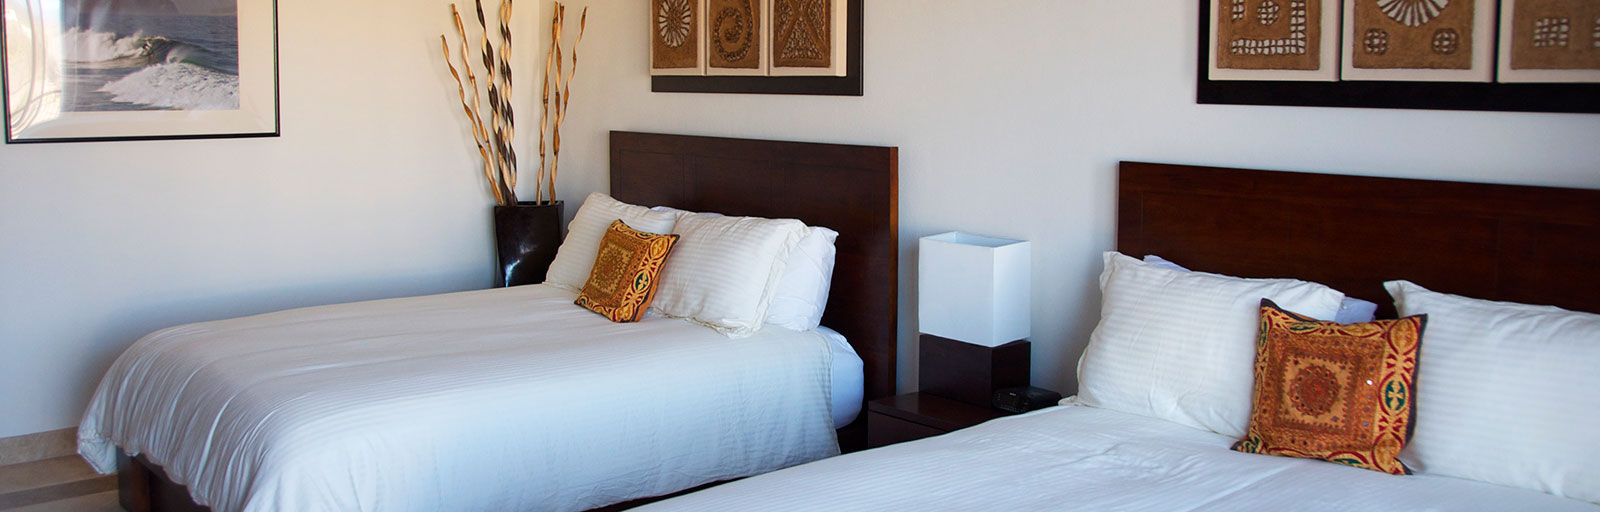 Mexico Yoga Retreat Center: Queen Beds in Upstairs Guest Bedroom